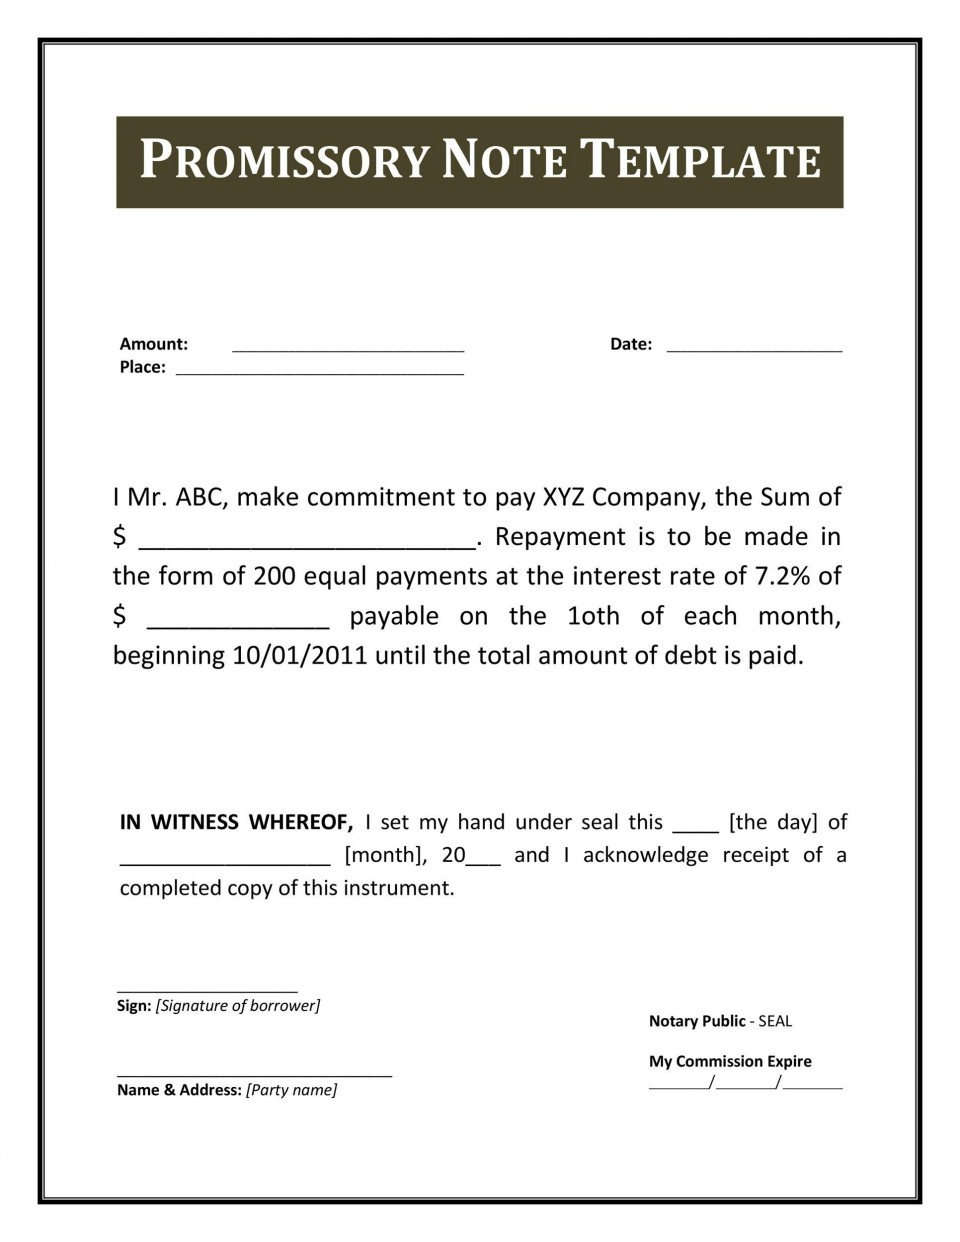 007 Unbelievable Template For Promissory Note Design  Free Personal Loan Uk960